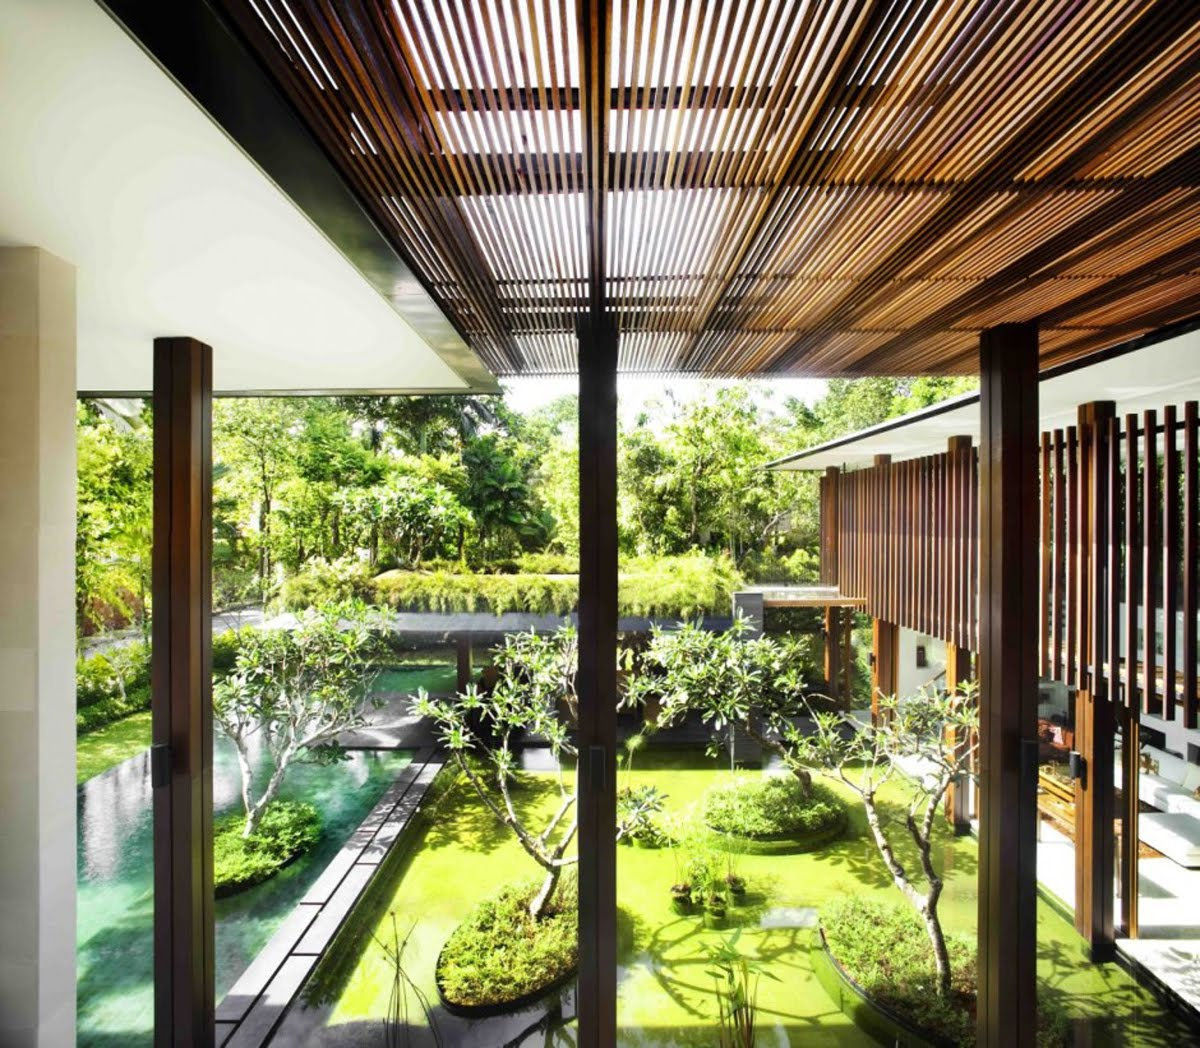 Home Design How Good To Positioning Your Dream Home In The Sun - Good home design